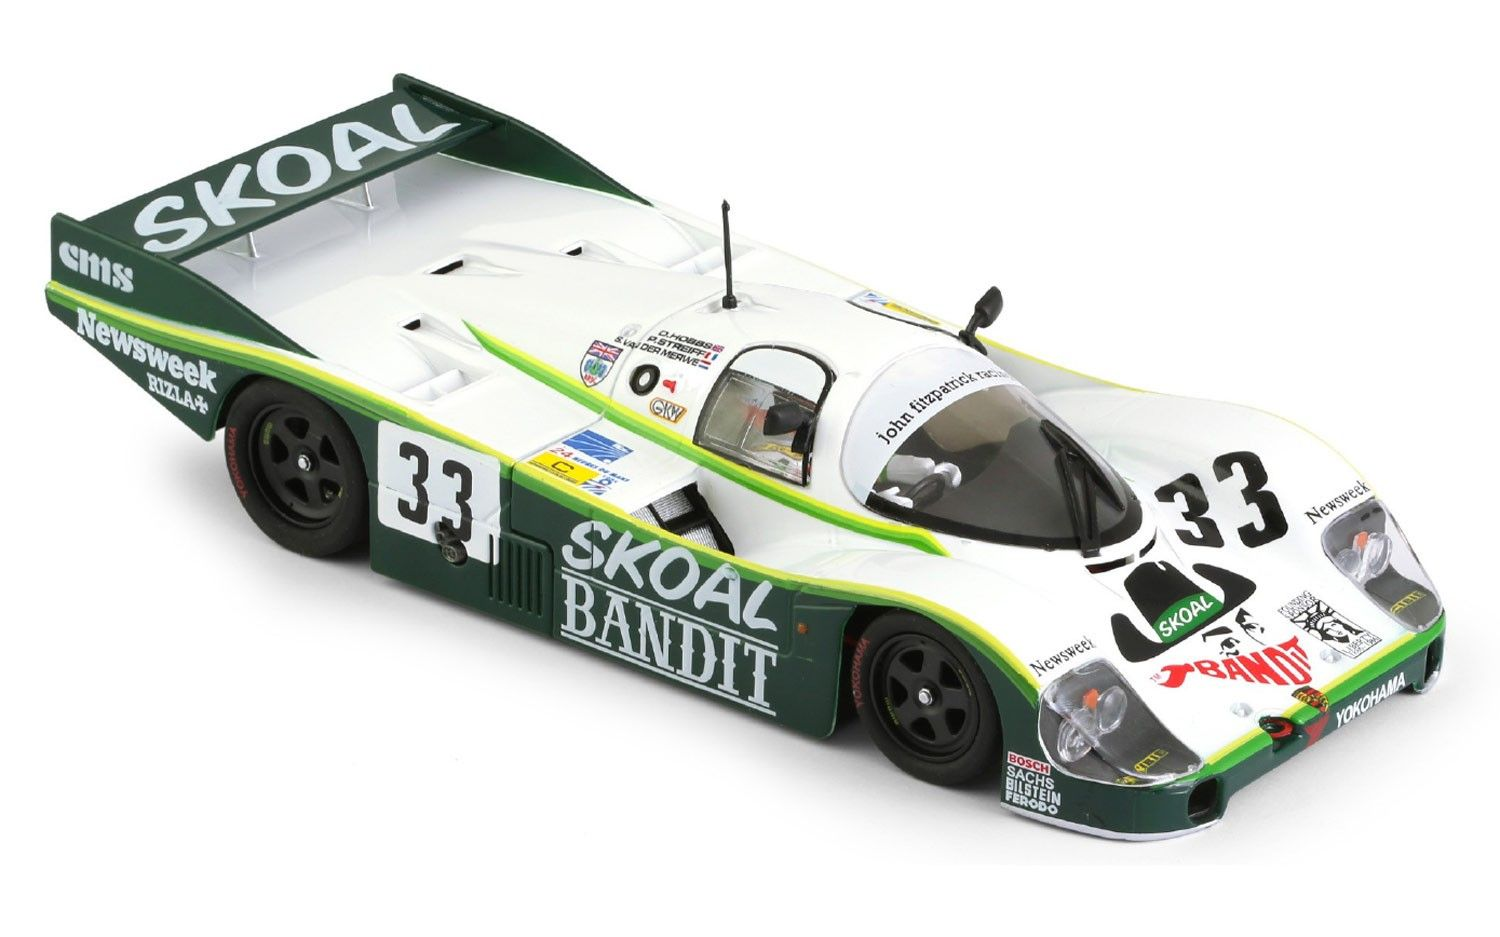 Porsche 956lh 33 3rd le mans 1984 skoal bandit car sica02h the 956 model was created by porsche in 1982 to compete in the new group c categor